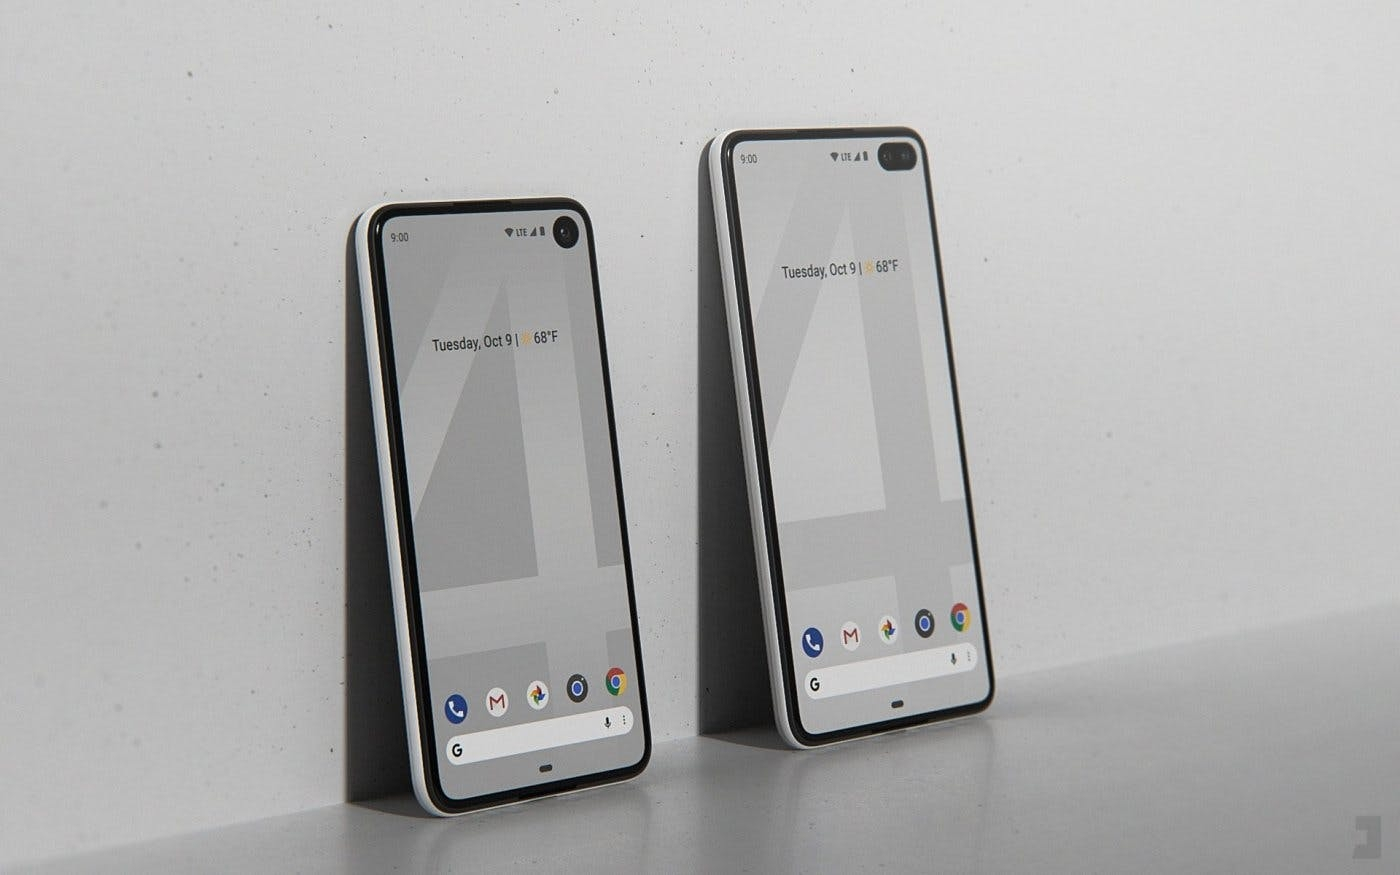 unofficial-renders-of-the-google-pixel-4-left-and-4-xl-right-based-on-slashleaks-blueprints